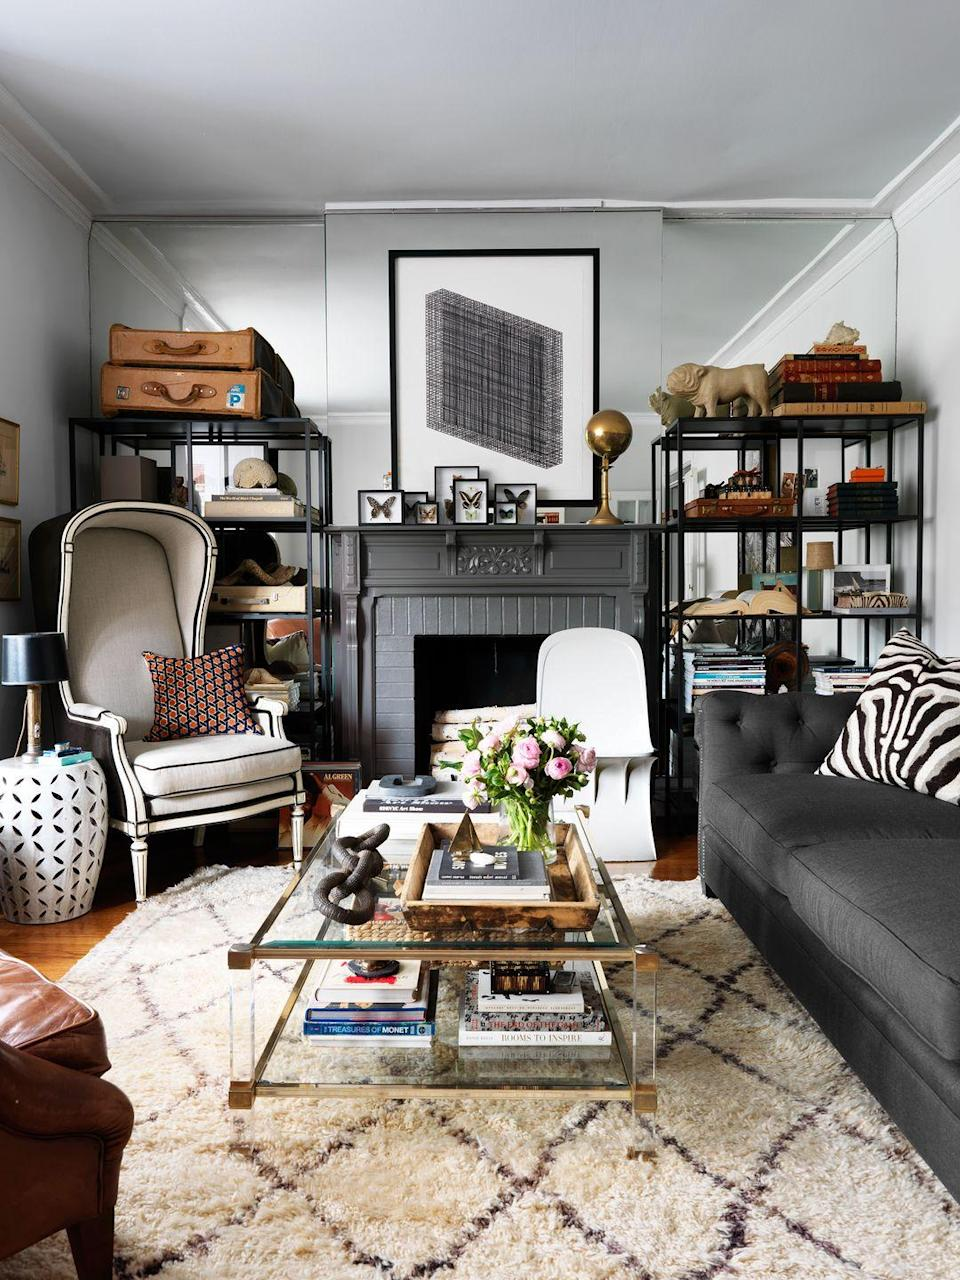 """<p>Interior designer Erik Kirk swapped out the old coffee table with one that includes a bottom shelf for more space to display decor and store collected items. Then, he added two shelving units against the back wall, which makes the room feel more complete while also giving them a place to stack all their books and keepsakes. </p><p><em><a href=""""https://www.housebeautiful.com/design-inspiration/house-tours/g15873332/devin-kirk-house-tour/"""" rel=""""nofollow noopener"""" target=""""_blank"""" data-ylk=""""slk:See more at House Beautiful »"""" class=""""link rapid-noclick-resp"""">See more at House Beautiful »</a> </em></p><p><strong>What you'll need:</strong> Wall shelving unit, $143, <a href=""""https://www.wayfair.com/furniture/pdp/gracie-oaks-theresa-tower-etagere-bookcase-grcs3182.html?piid="""" rel=""""nofollow noopener"""" target=""""_blank"""" data-ylk=""""slk:Wayfair.com"""" class=""""link rapid-noclick-resp"""">Wayfair.com</a></p>"""